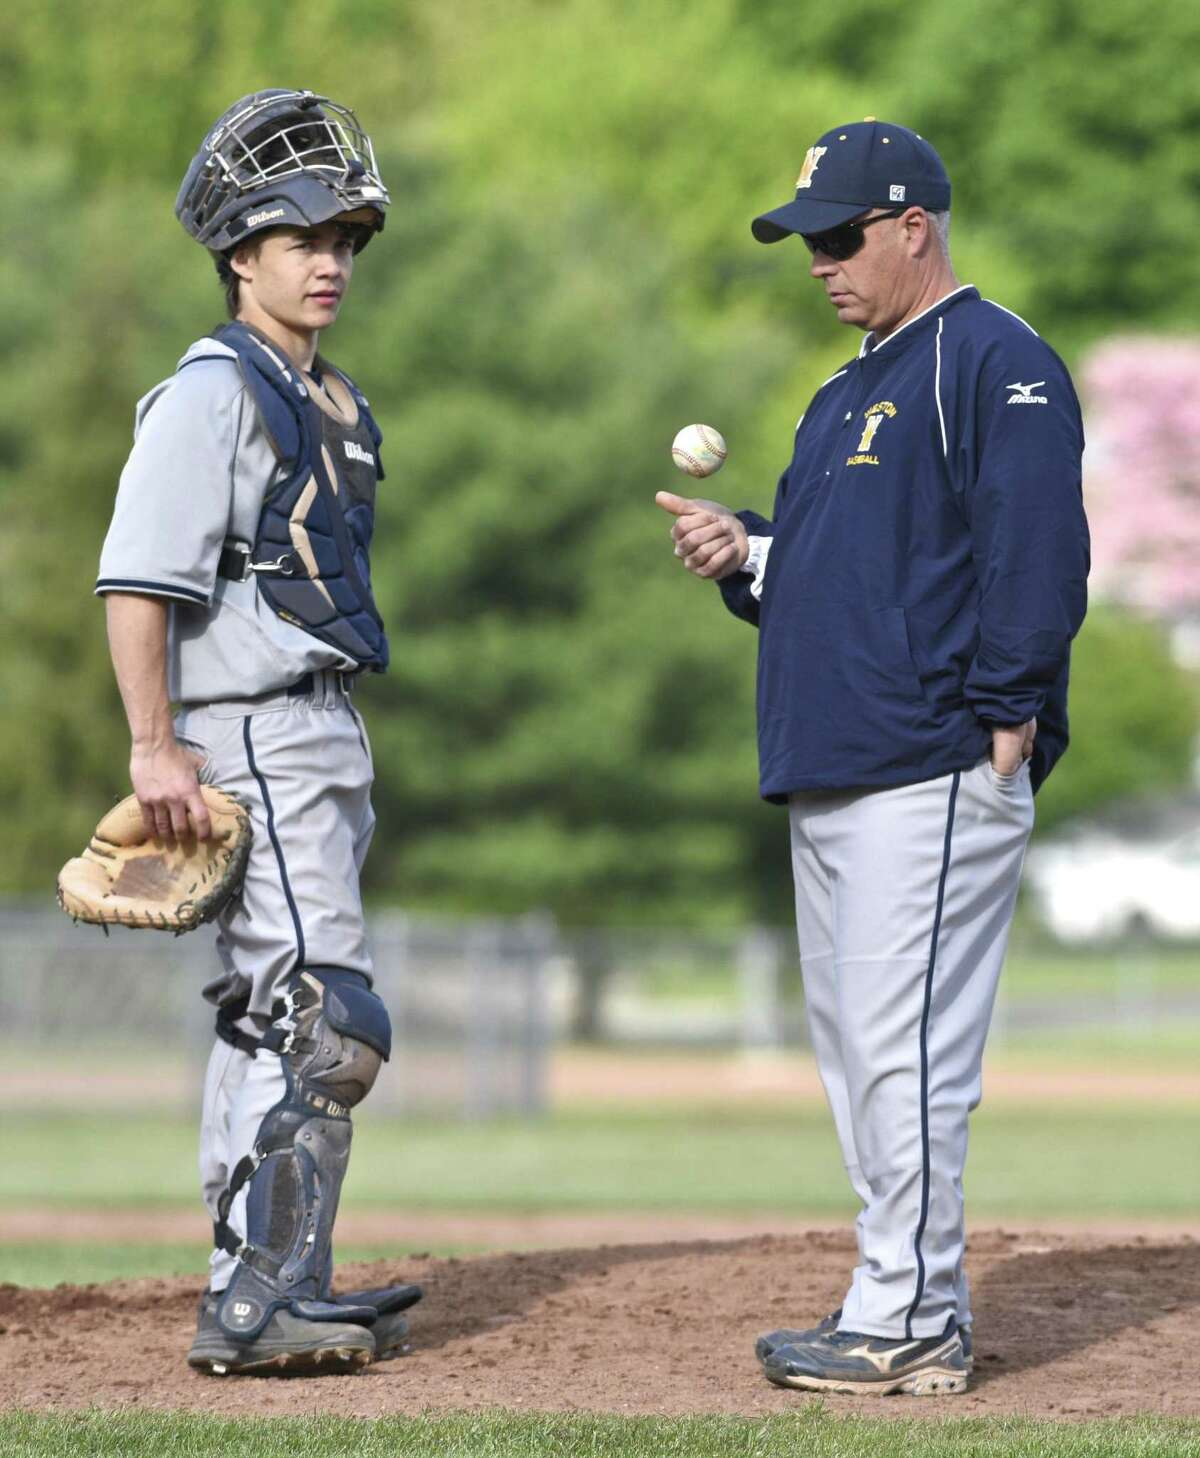 Weston head coach Frank Fedeli and catcher Jake Cavicchia (10) wait on the mound for a new pitcher to enter the game during the boys baseball game between Weston and New Milford high schools. Wednesday afternoon, May 10, 2017, at New Milford High School, in New Milford, Conn.